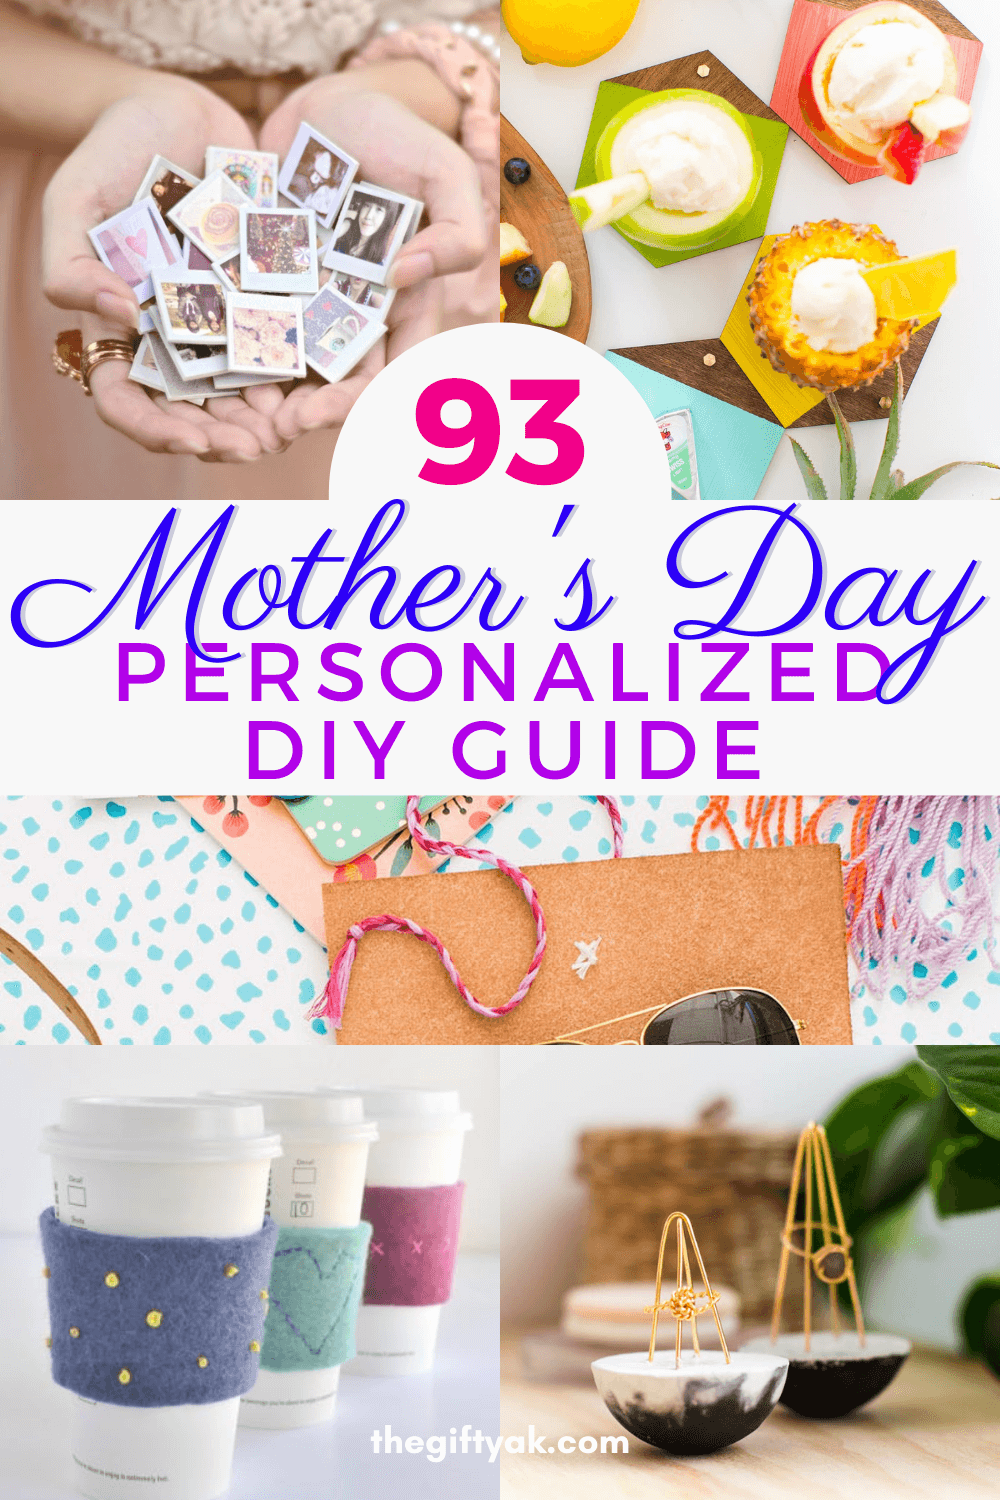 93 Personalized Mothers Day DIY Homemade Craft Gift Inspiration Pinterest How to Make Tutorial Guide